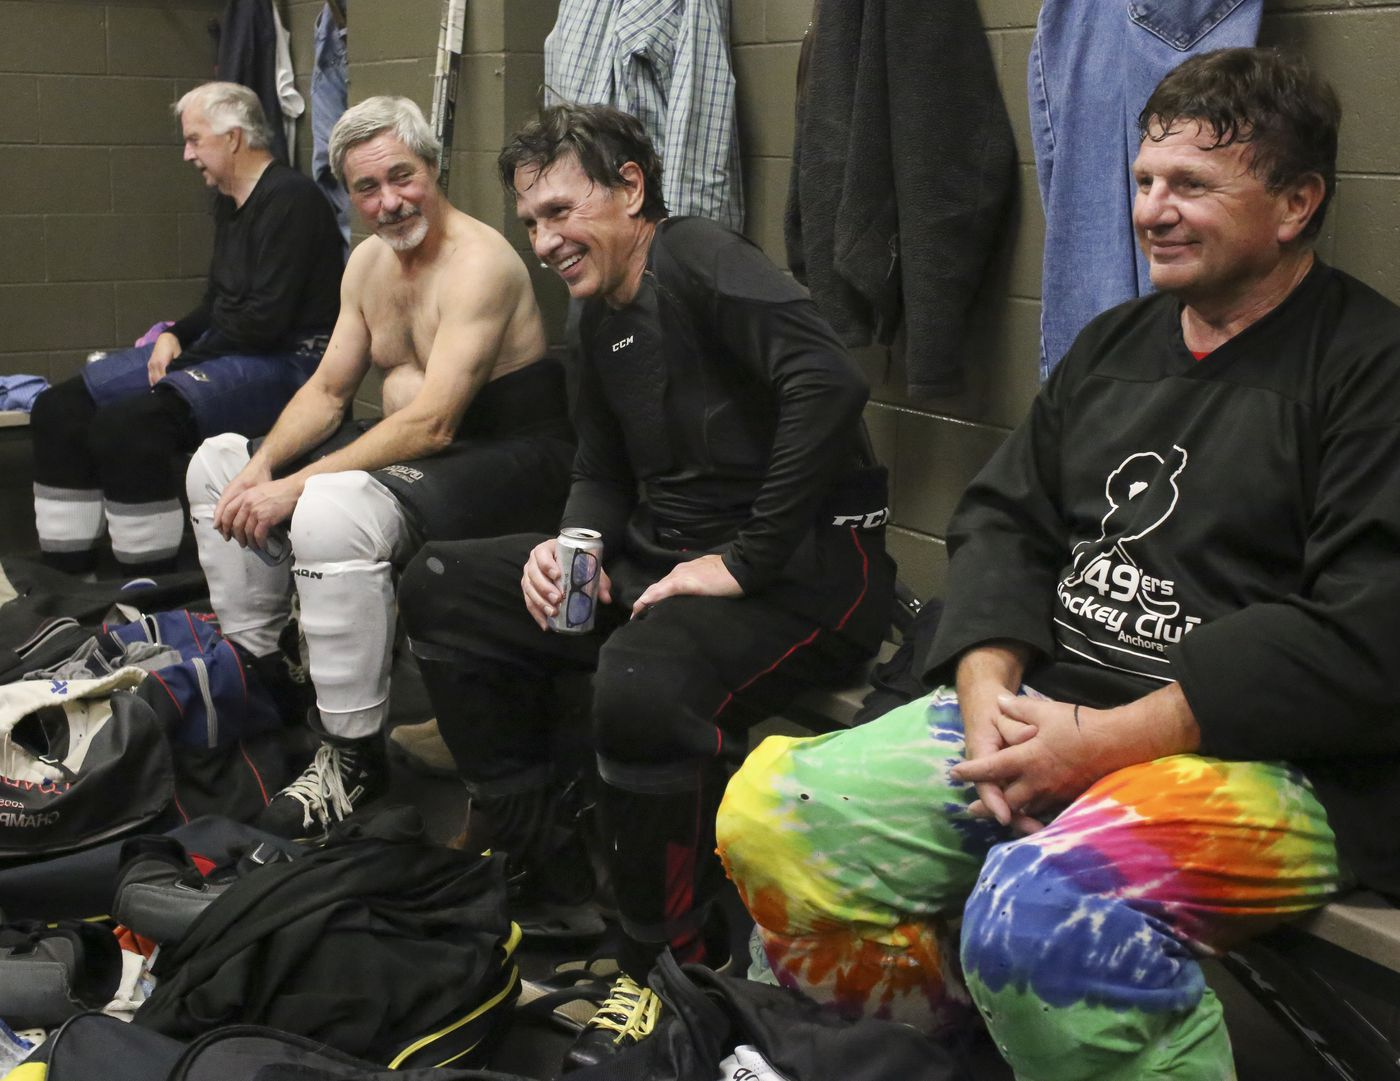 Steve Carlson, center, sits with teammates and sips a cold beer after a hockey game. Don Carlson, right, wears the tie-dye pants Steve has kept in his hockey bag for more than 20 years to loan to players who forget theirs. Don wore them after forgetting his pants for a recent game. (Emily Mesner / ADN)